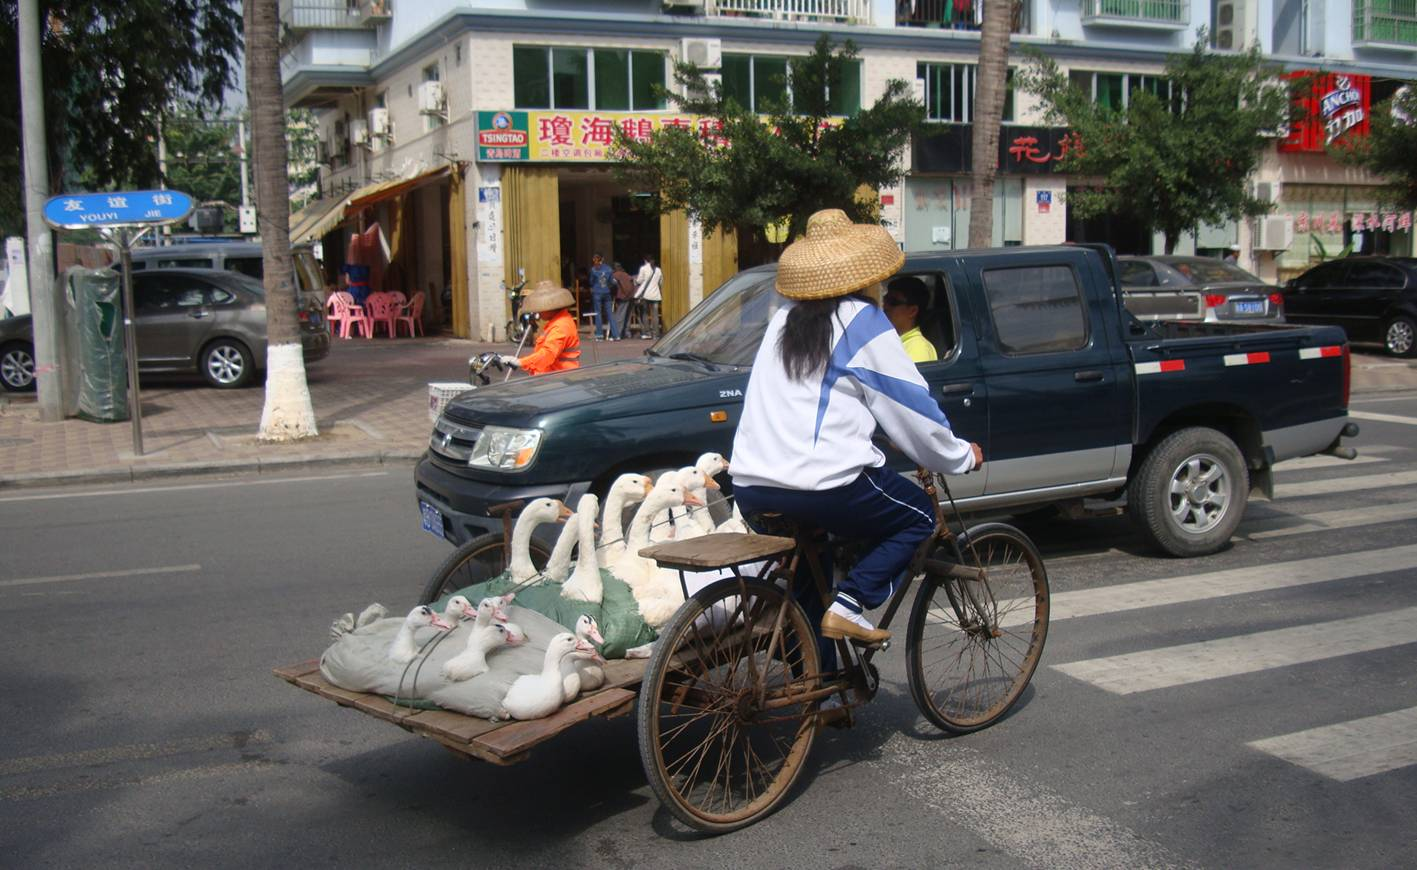 Picture:  Geese to go on the streets of Sanya, Hainan Island, China.